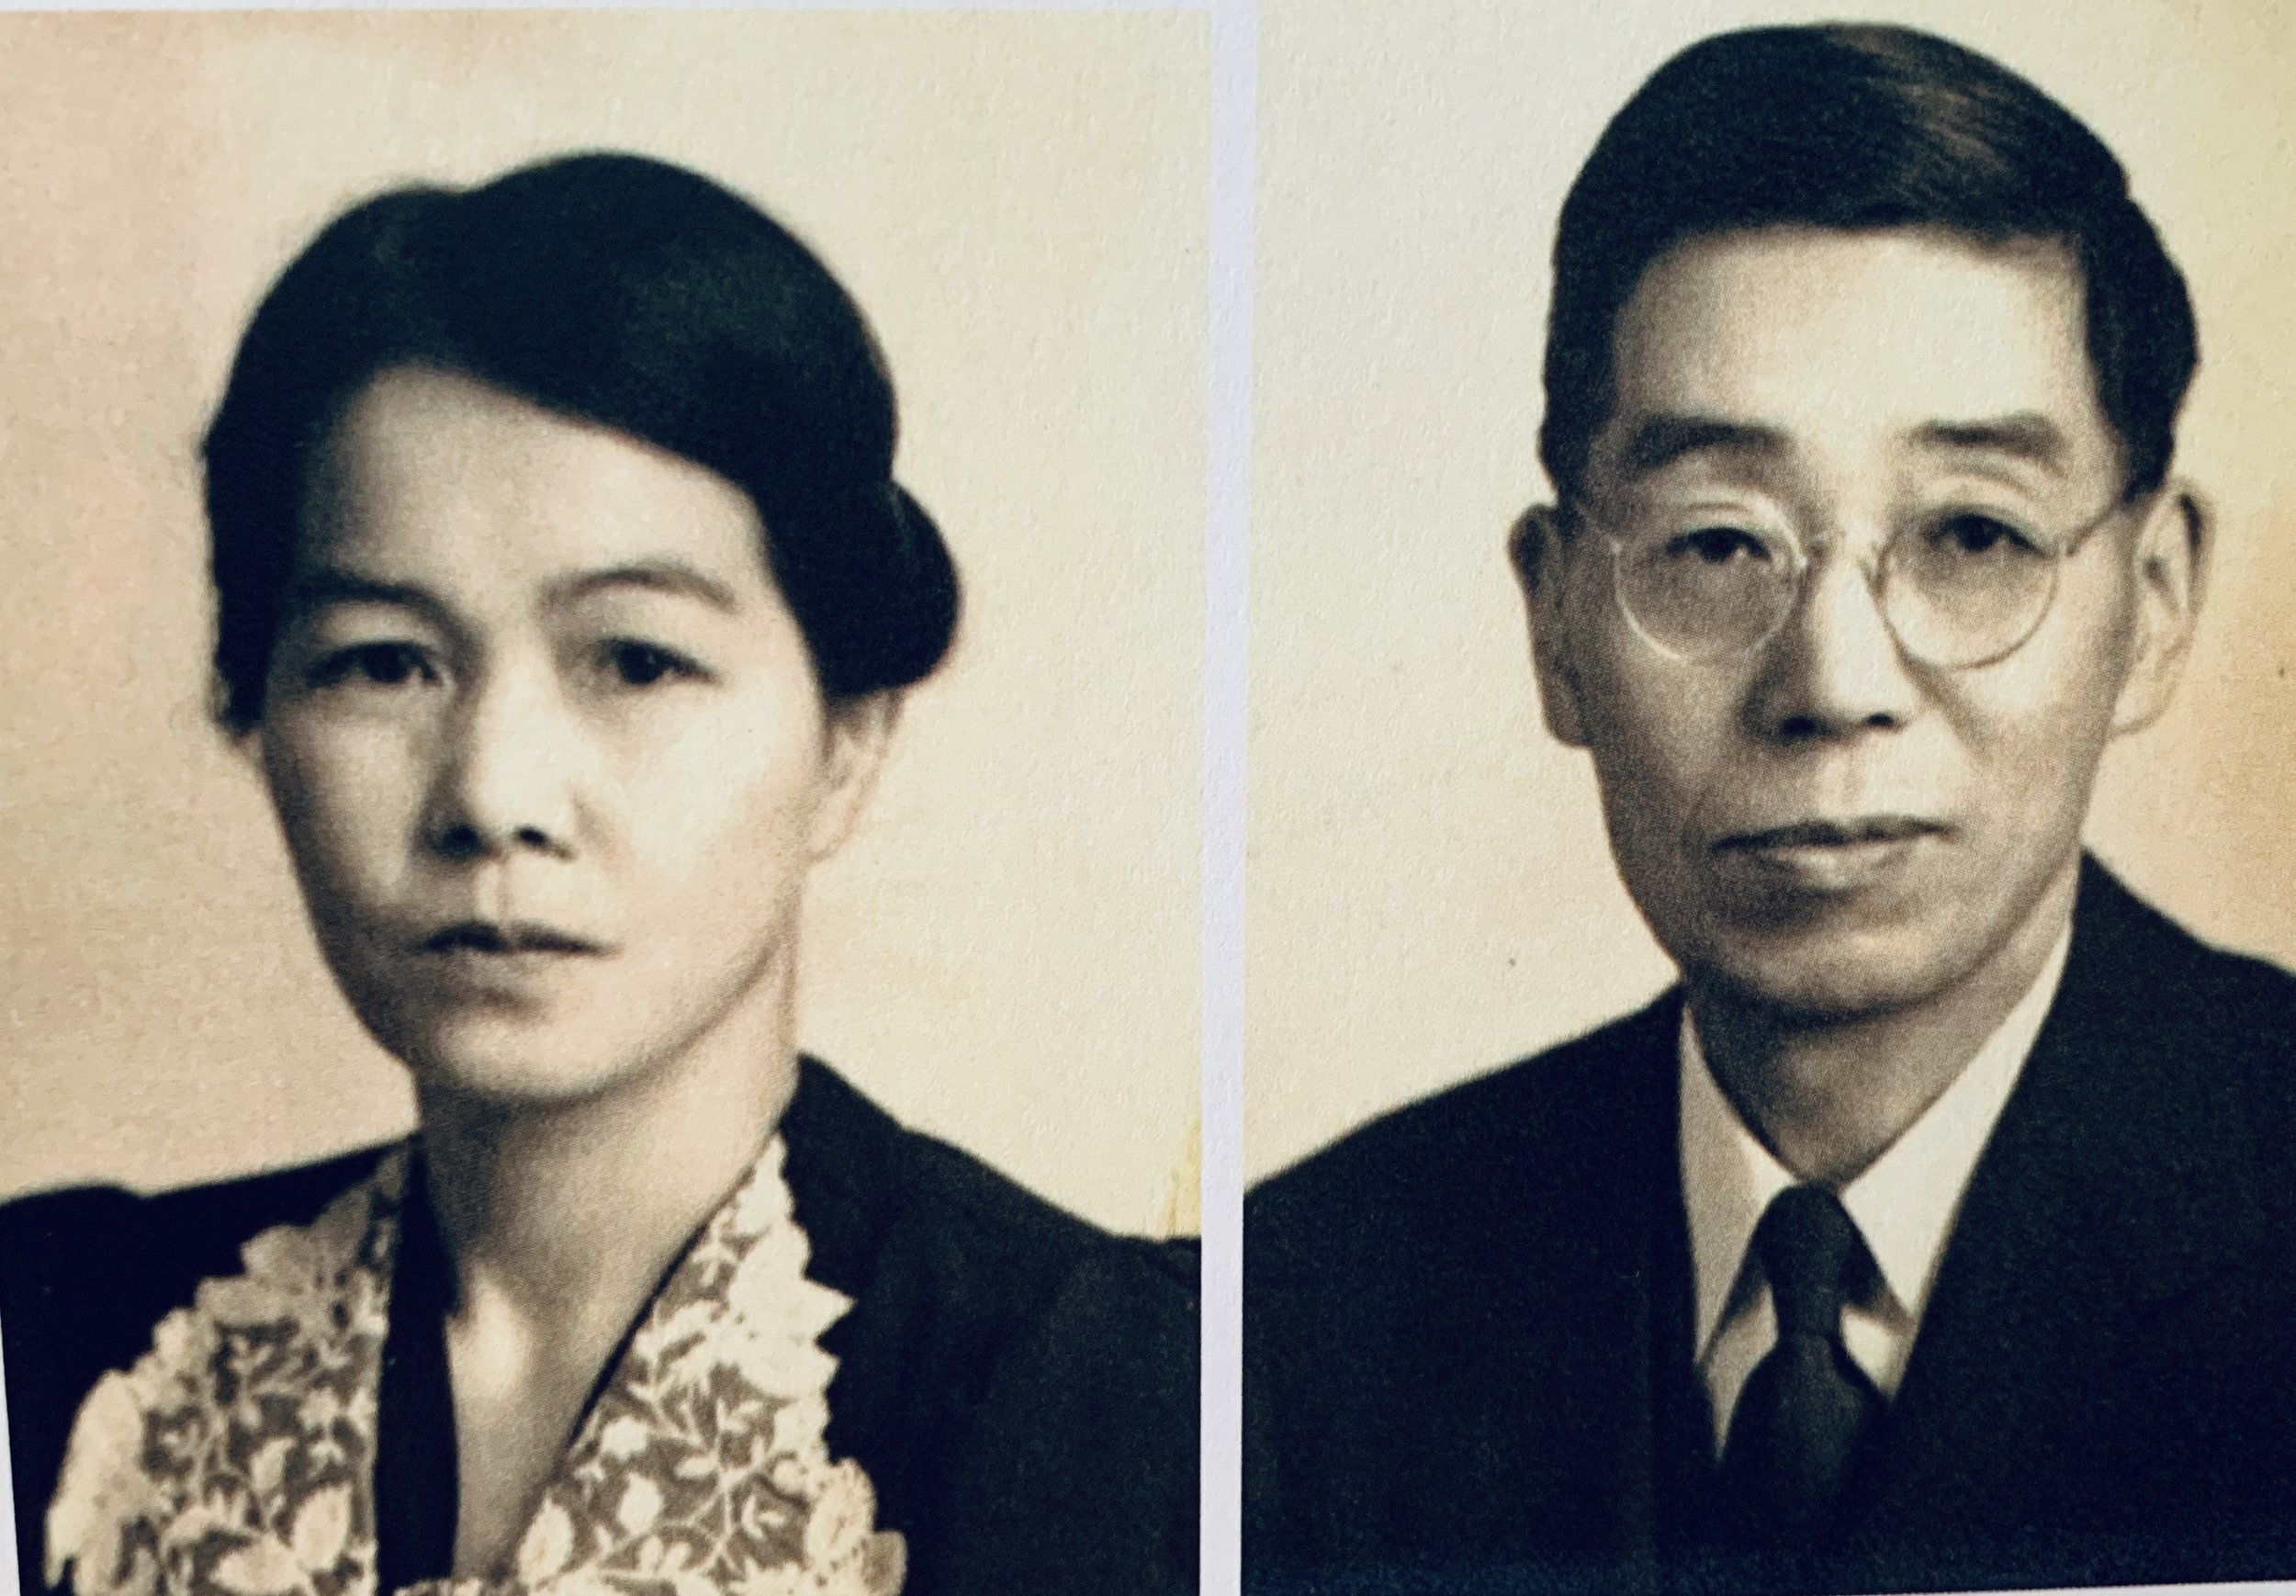 Aiko's parents, Maki and Frank Tanaka